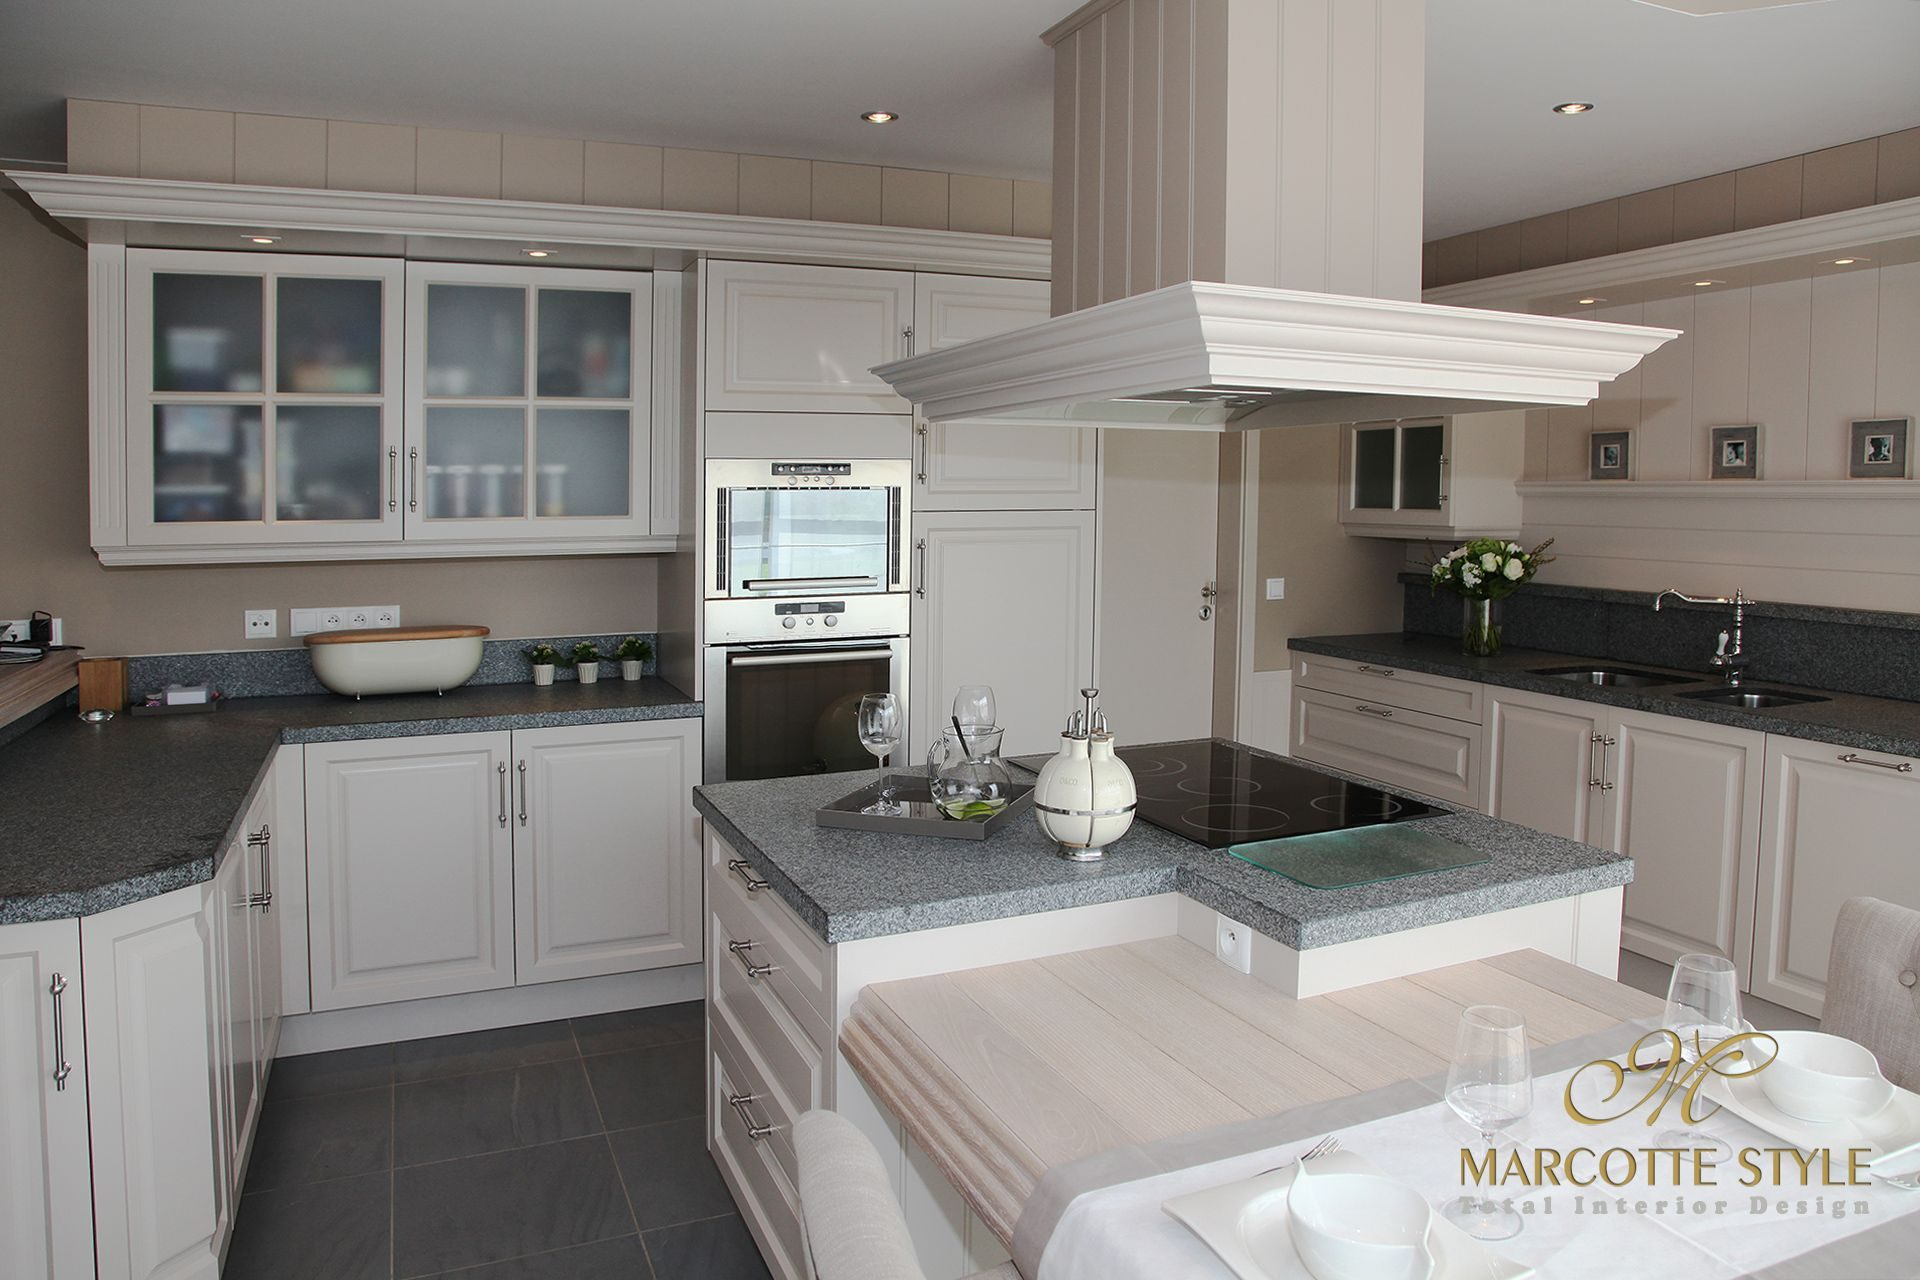 The Most Beautiful Kitchen The Most Beautiful Kitchens Marcotte Style